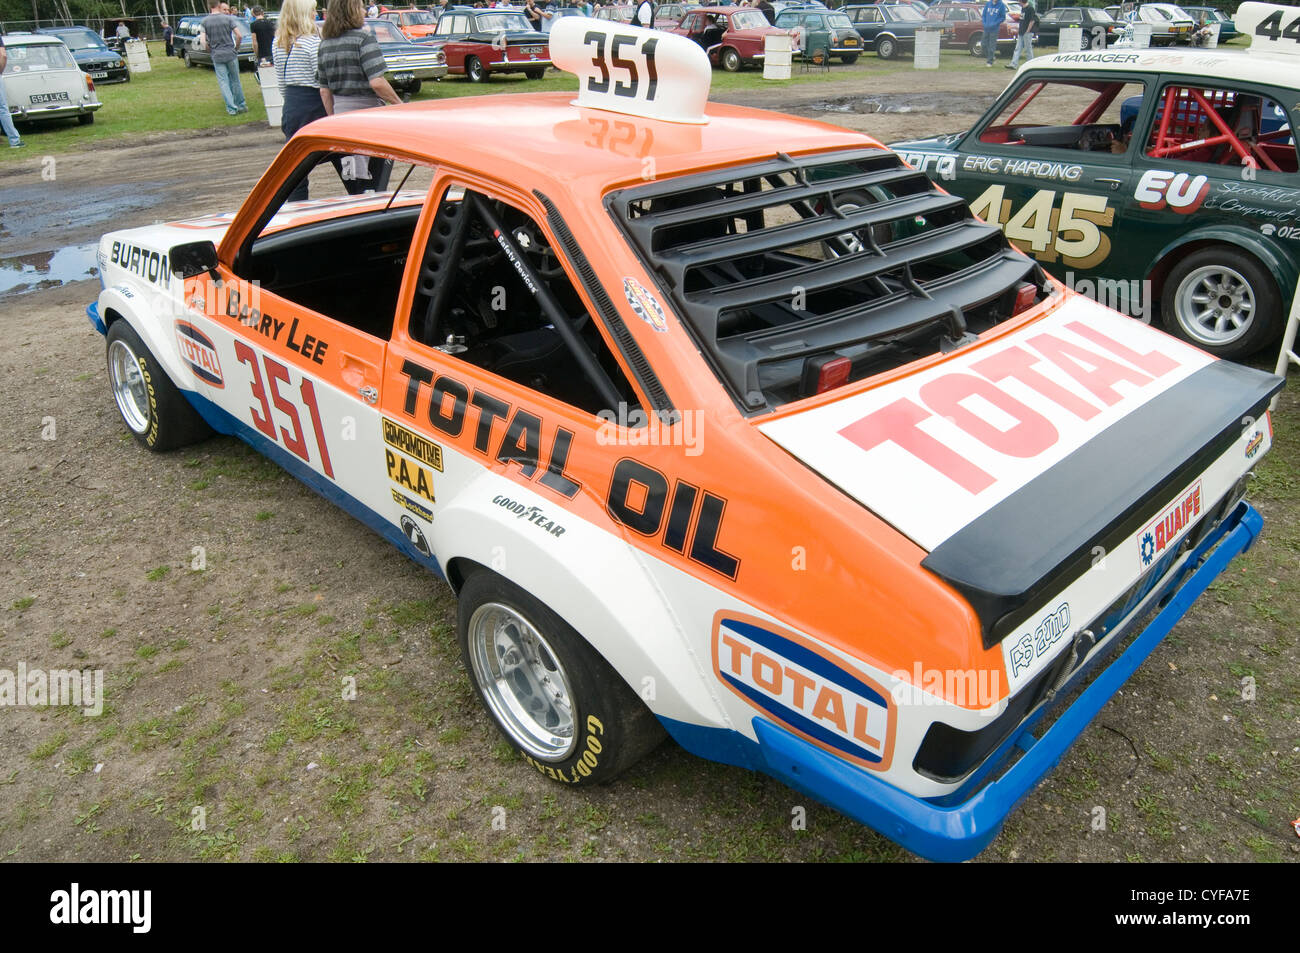 mk2 ford escort rs 2000 classic hot rod barry lee driver race racing ...